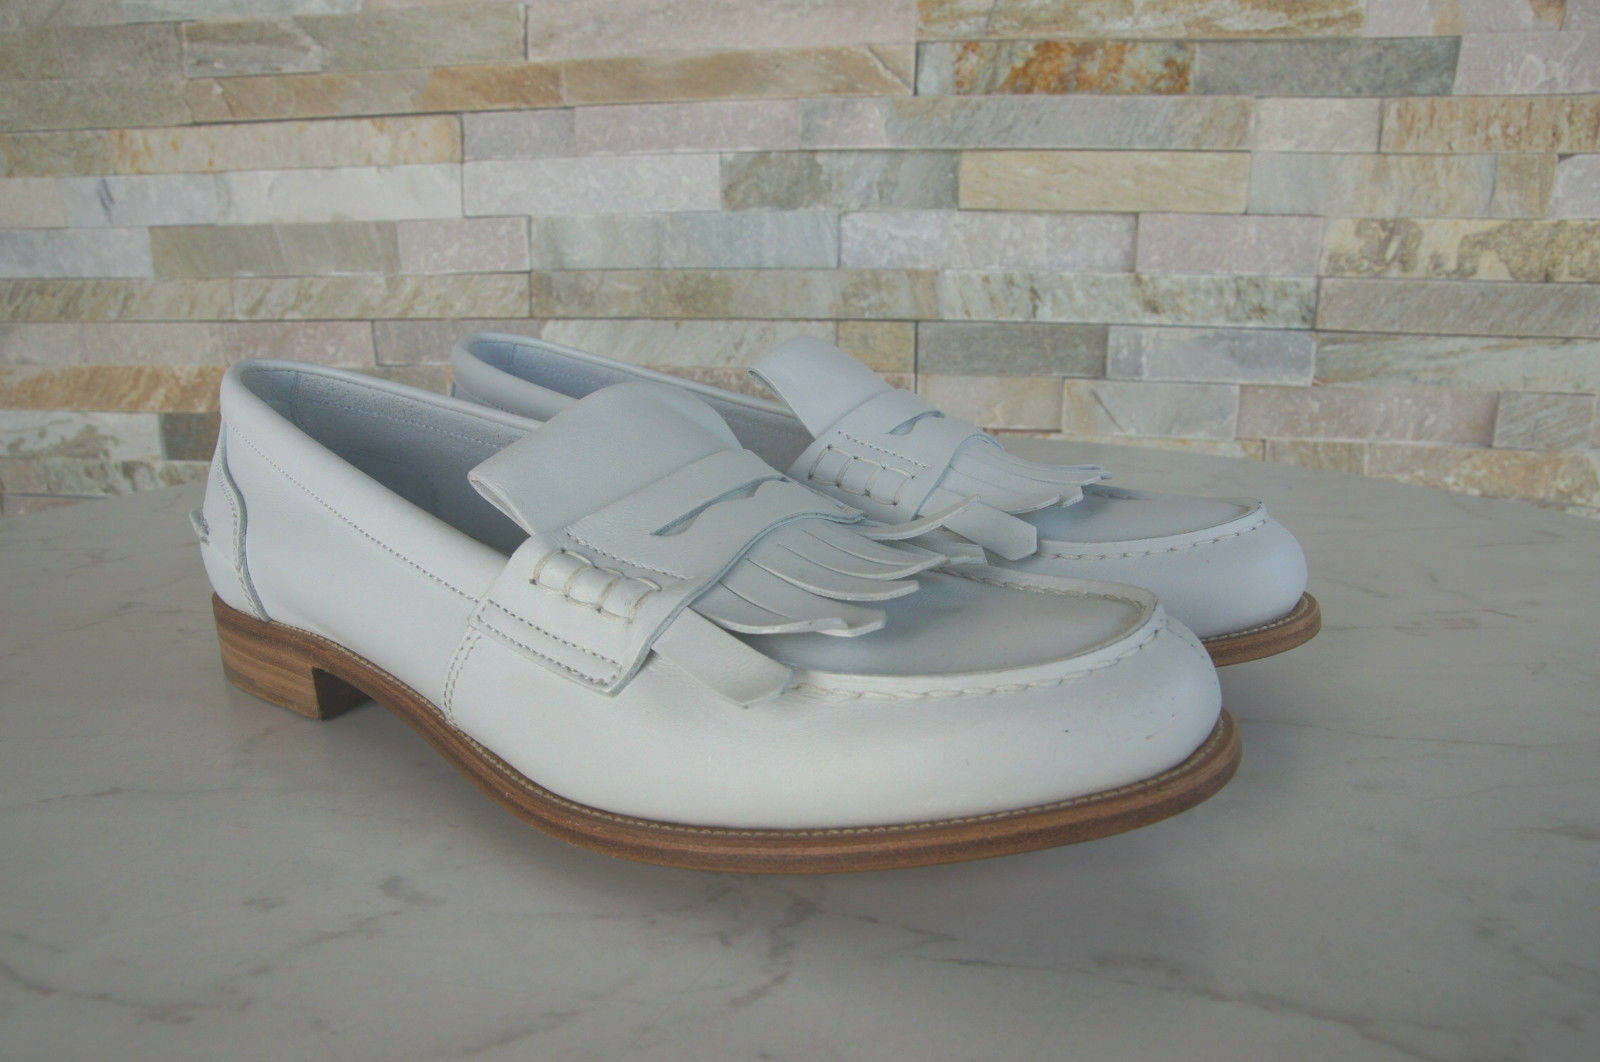 40 Chaussures Mocassins Basses Church's Original OYqwE1